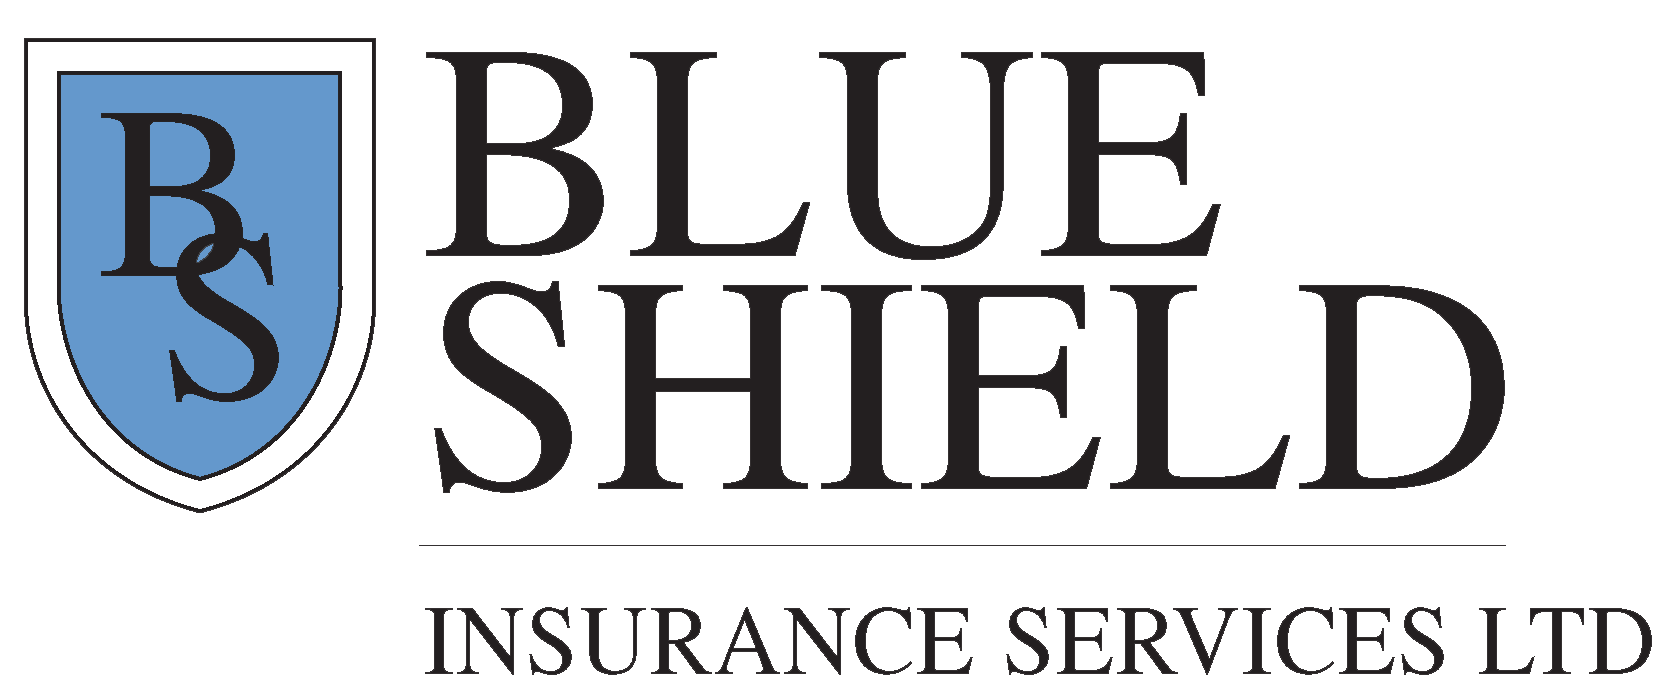 Blue Shield Insurance Services Logo